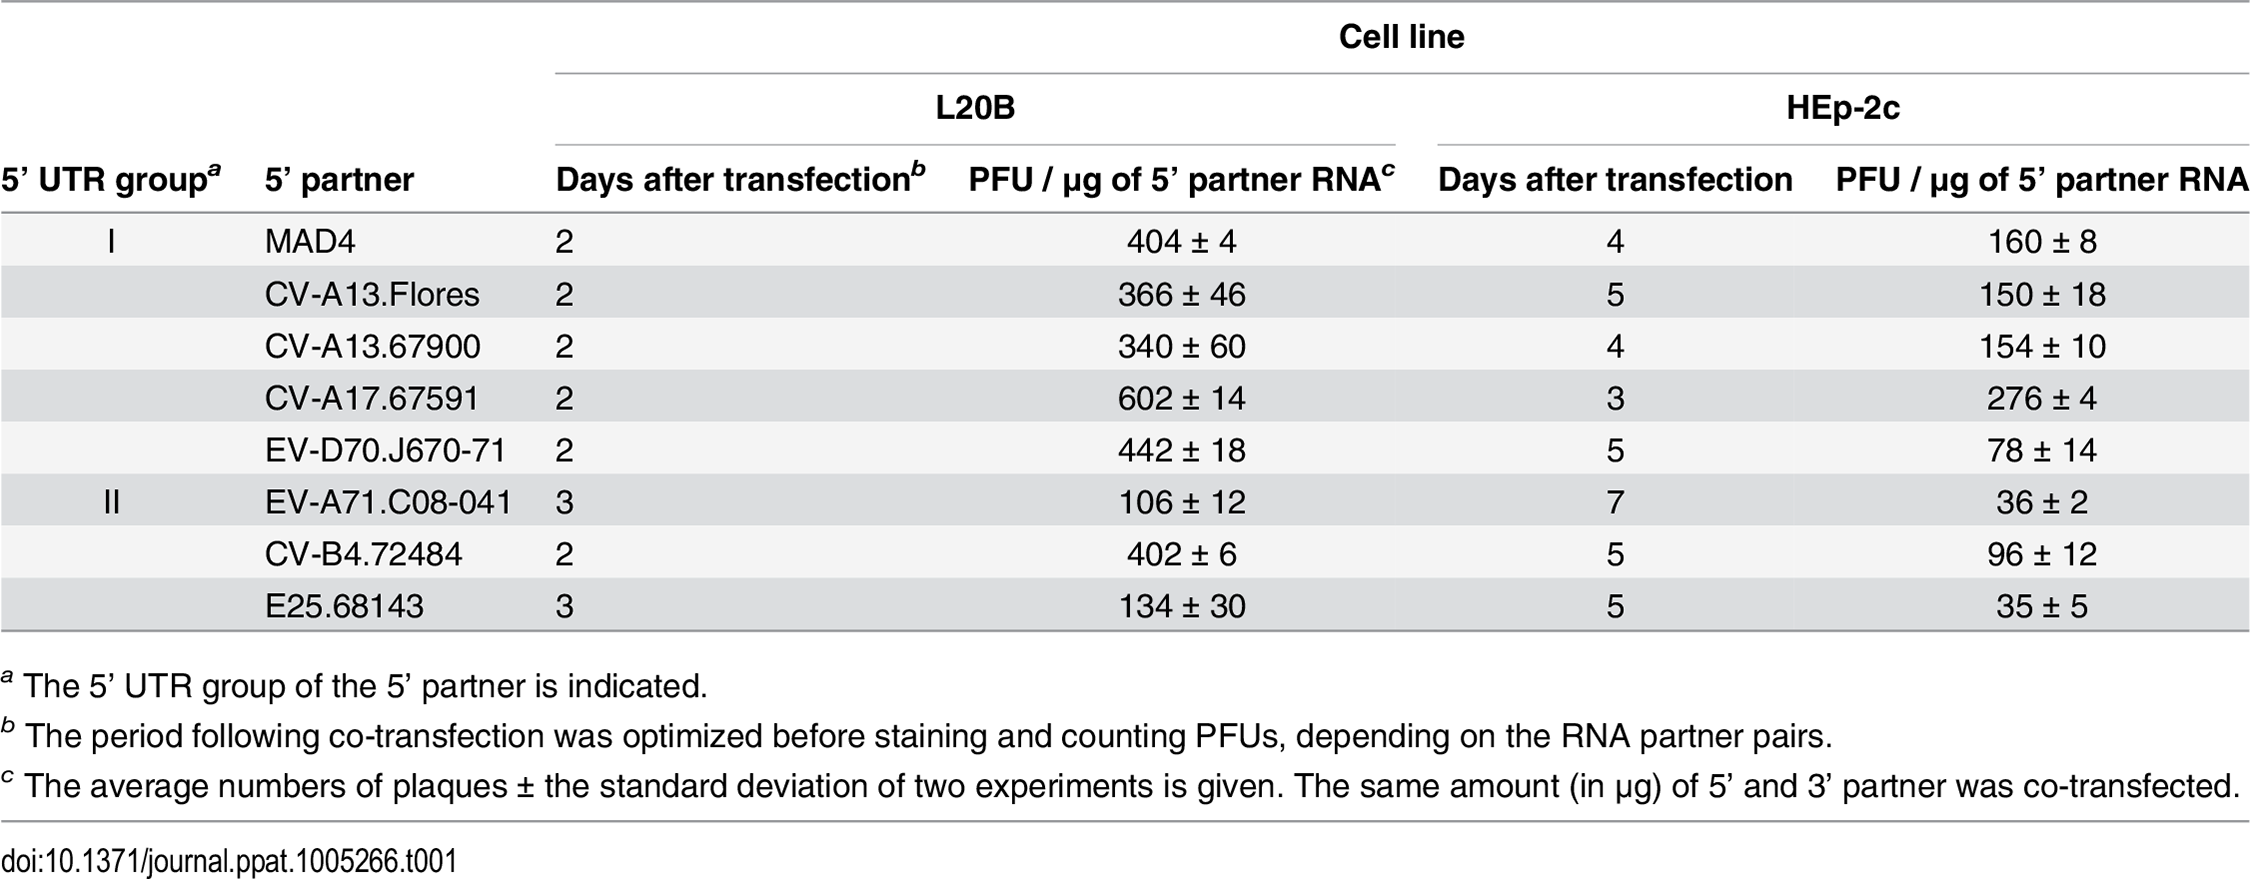 Recombination efficiency following the co-transfection of L20B and HEp-2c cells with the MAD4 3' RNA partner and each 5' RNA partner.